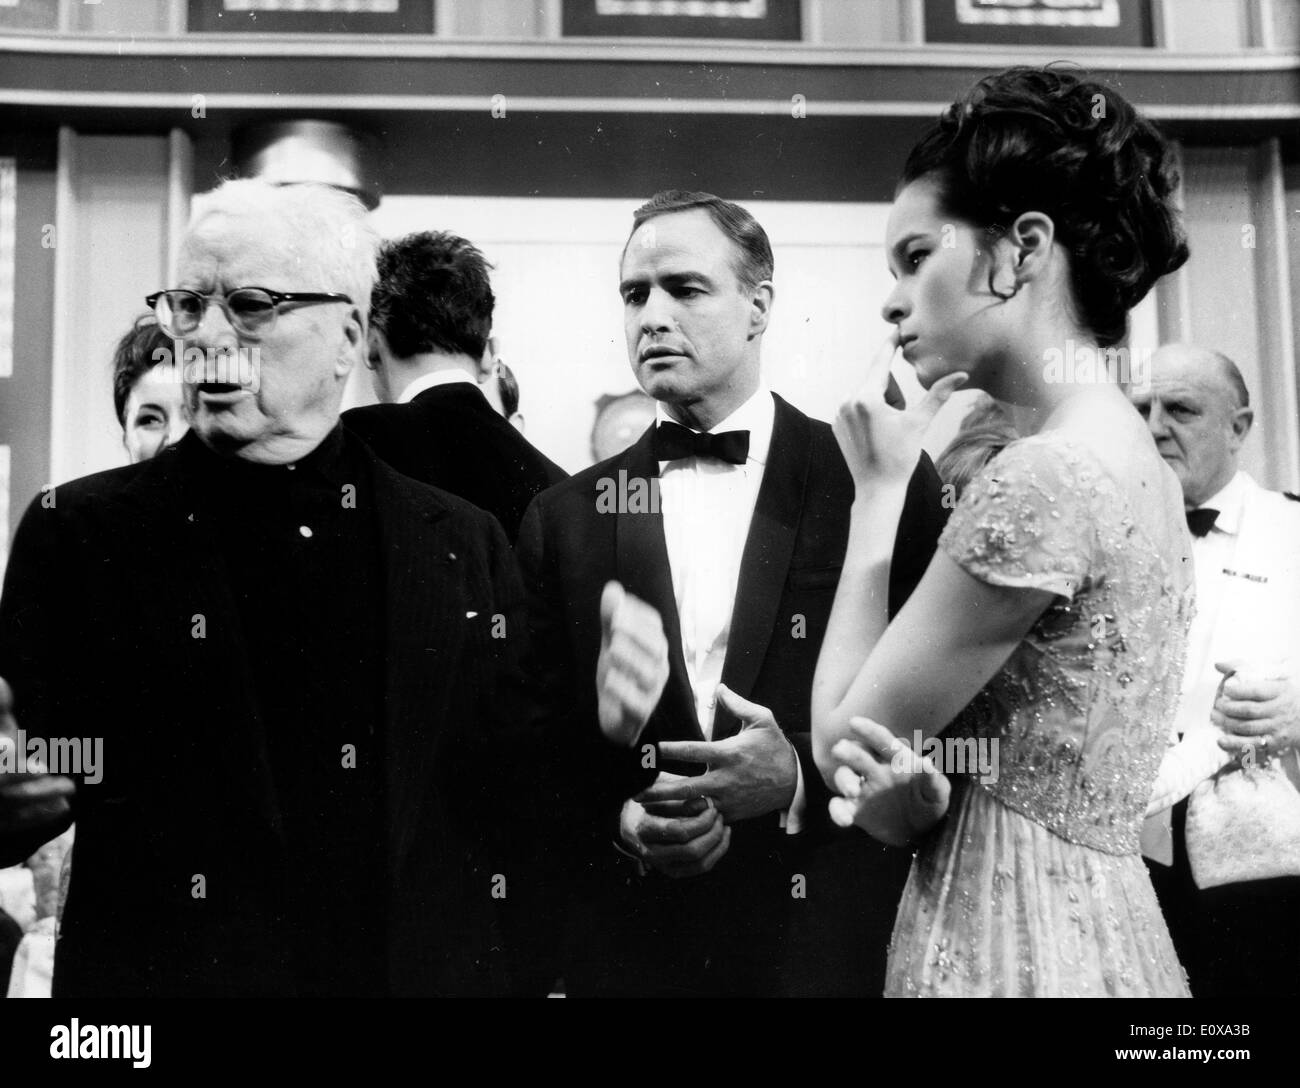 Charlie Chaplin directing a film starring Marlon Brando and his daughter Geraldine - Stock Image